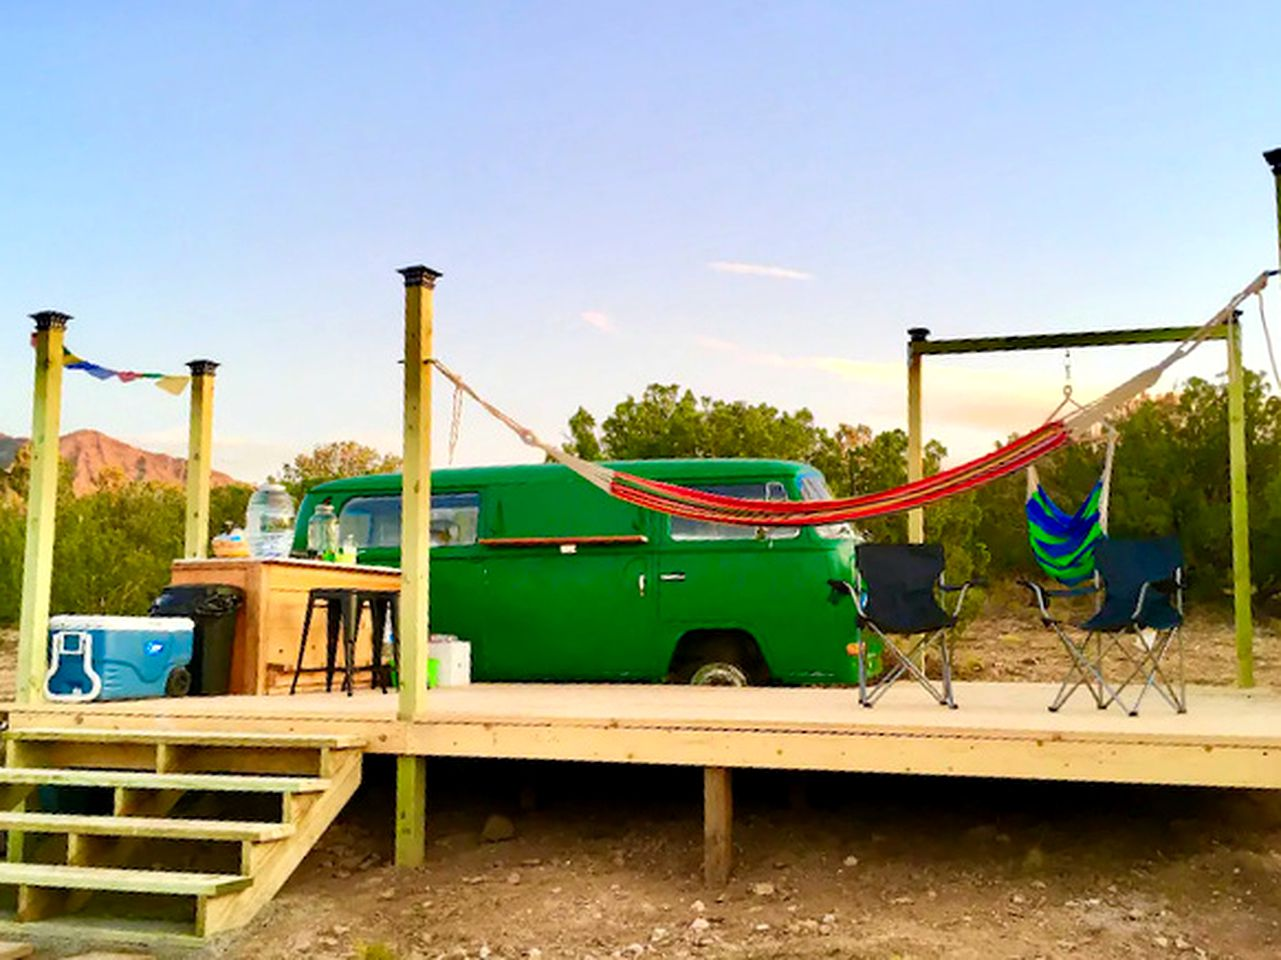 Vintage campervan rental for a couple of guests to go glamping in New Mexico